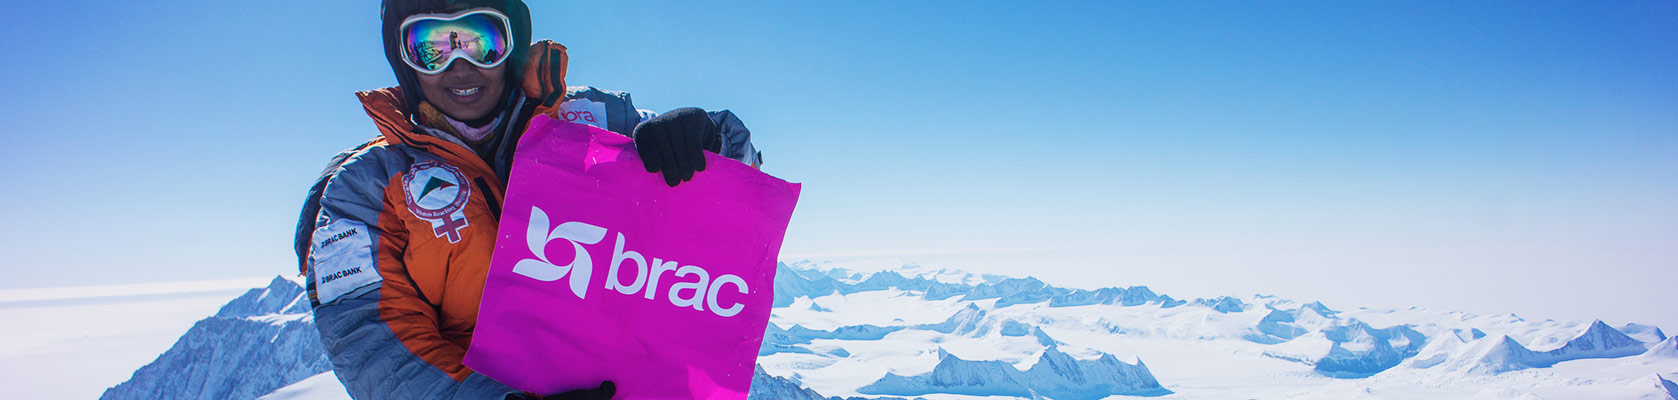 Wasfia Nazreen has climbed the highest mountains in 7 countries to celebrate women in BRAC